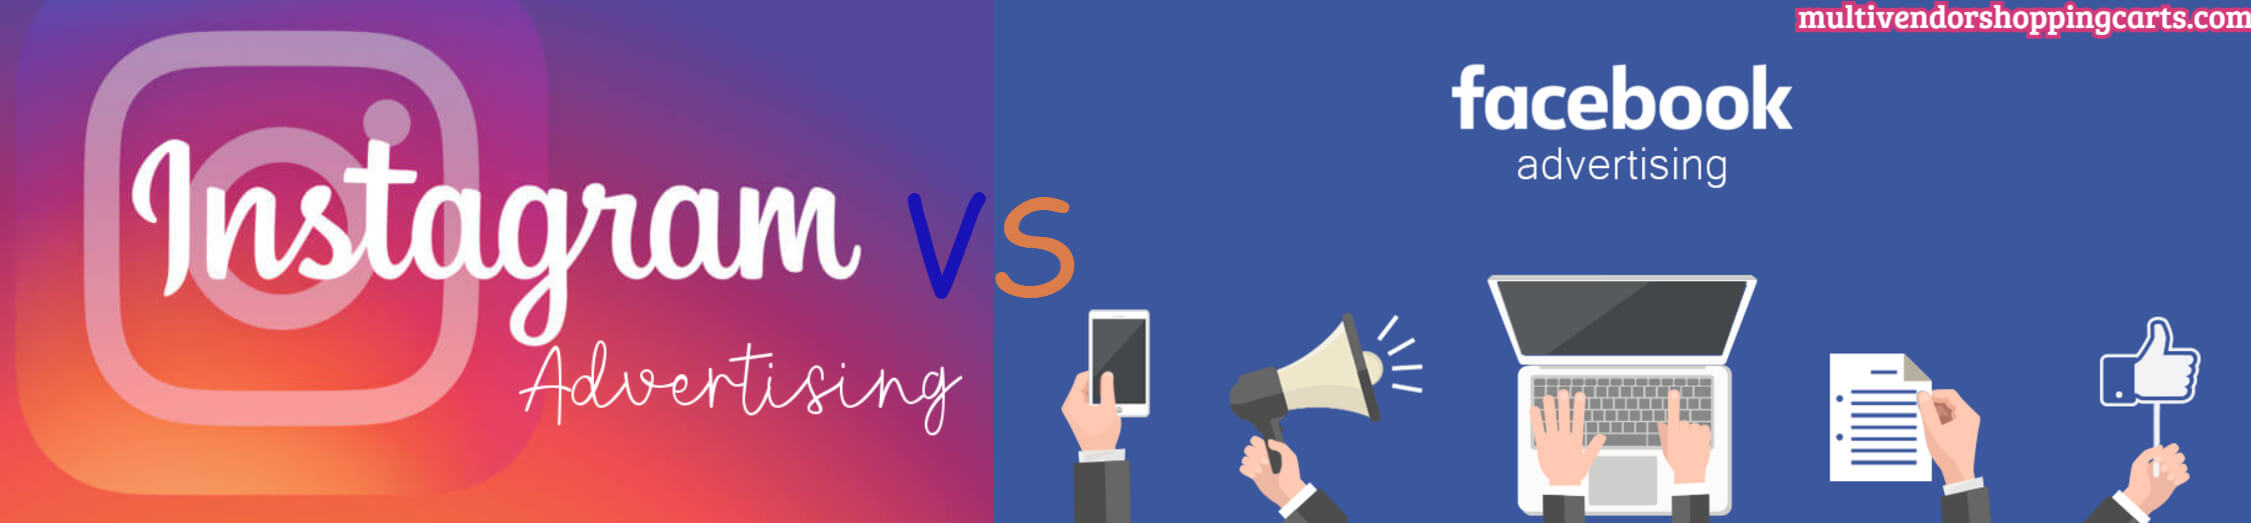 Instagram vs Facebook Ads: Which One is Better for eCommerce Store?